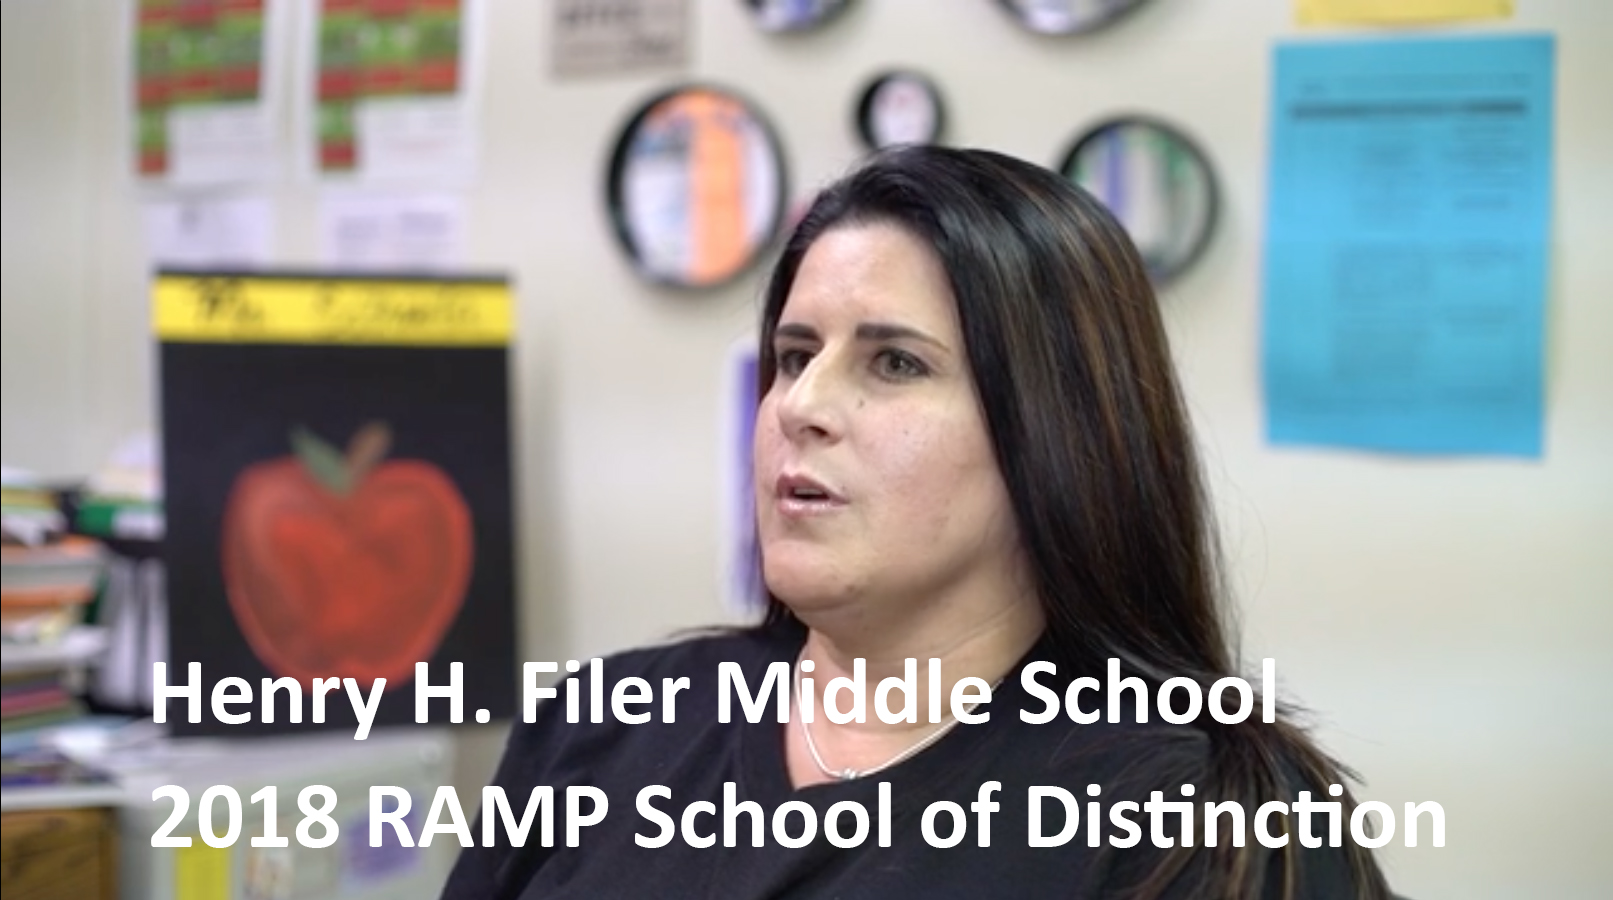 Henry H. Filer Middle School: 2018 RAMP School of Distinction